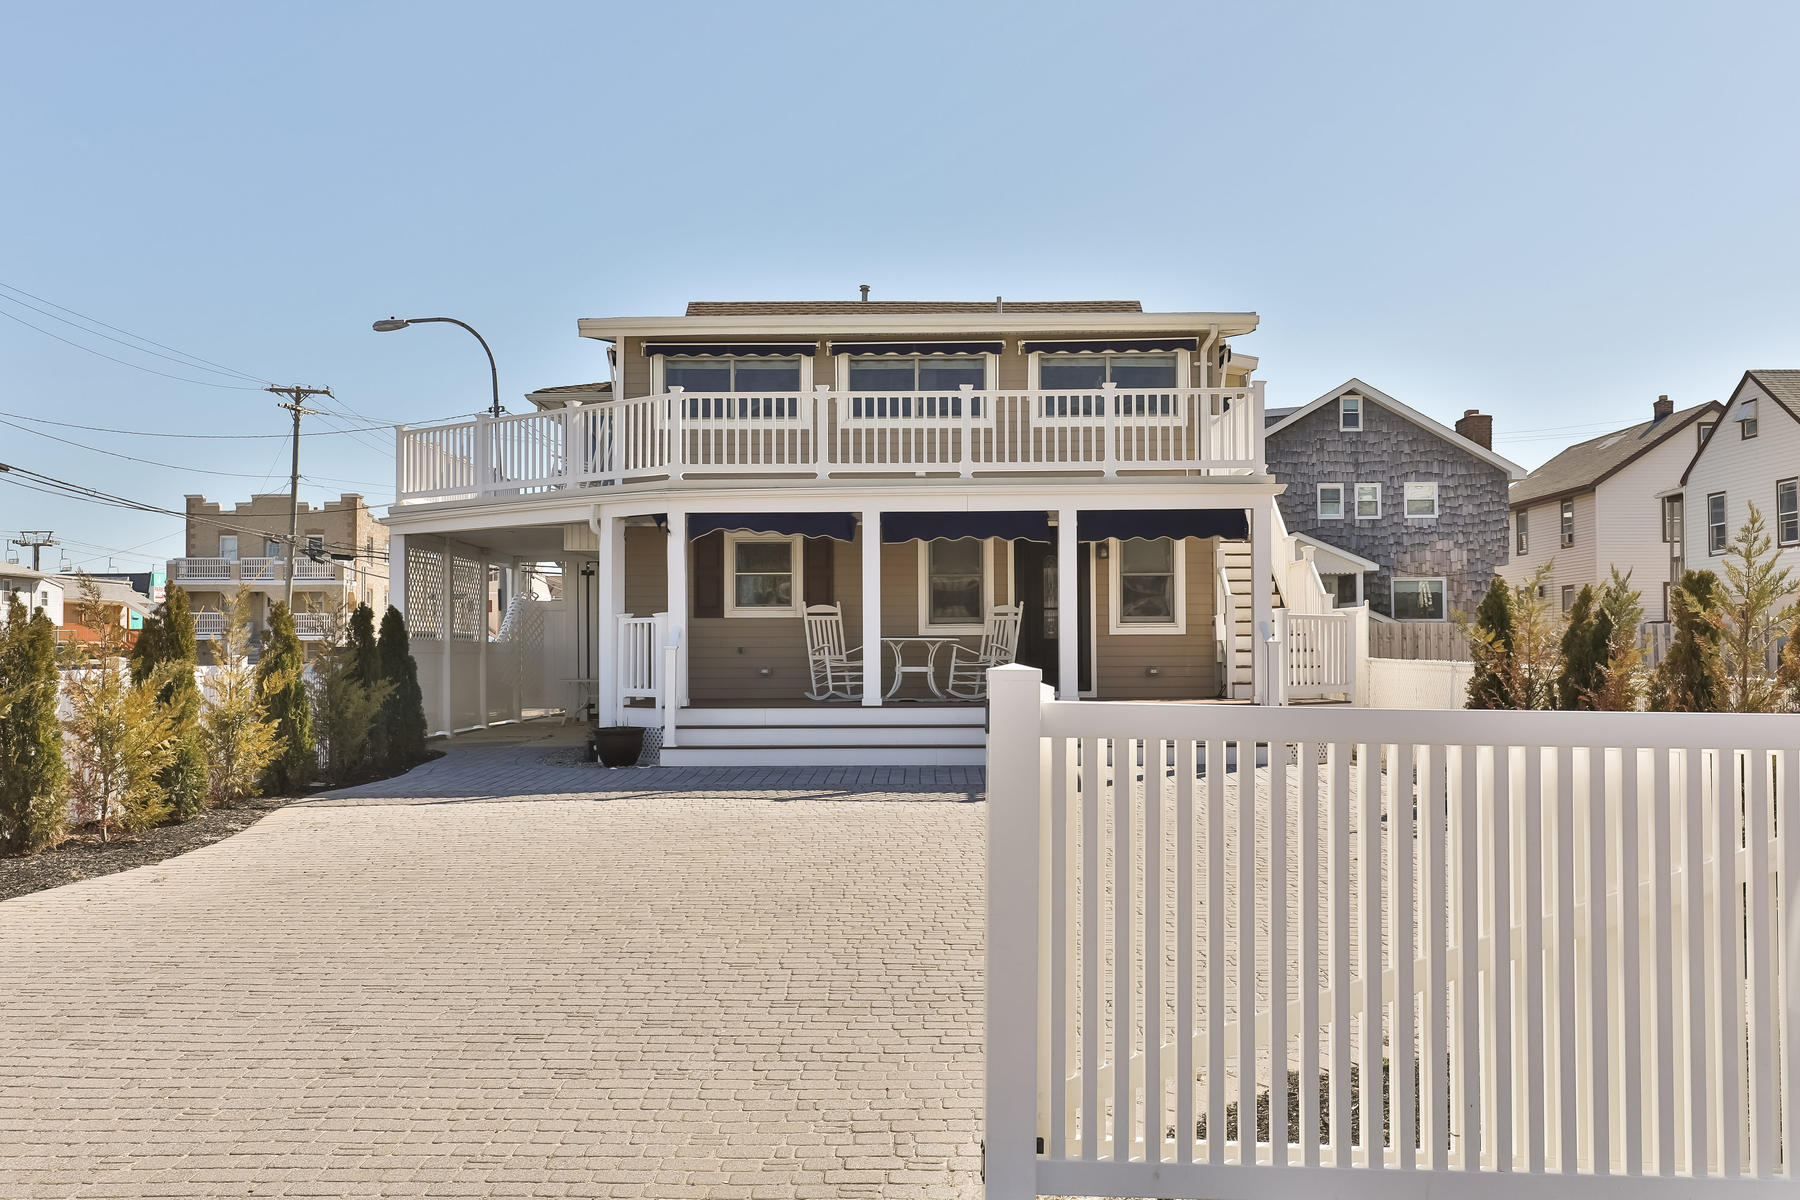 独户住宅 为 销售 在 Panoramic Ocean Views 17 Sampson Avenue Seaside Heights, 08751 美国